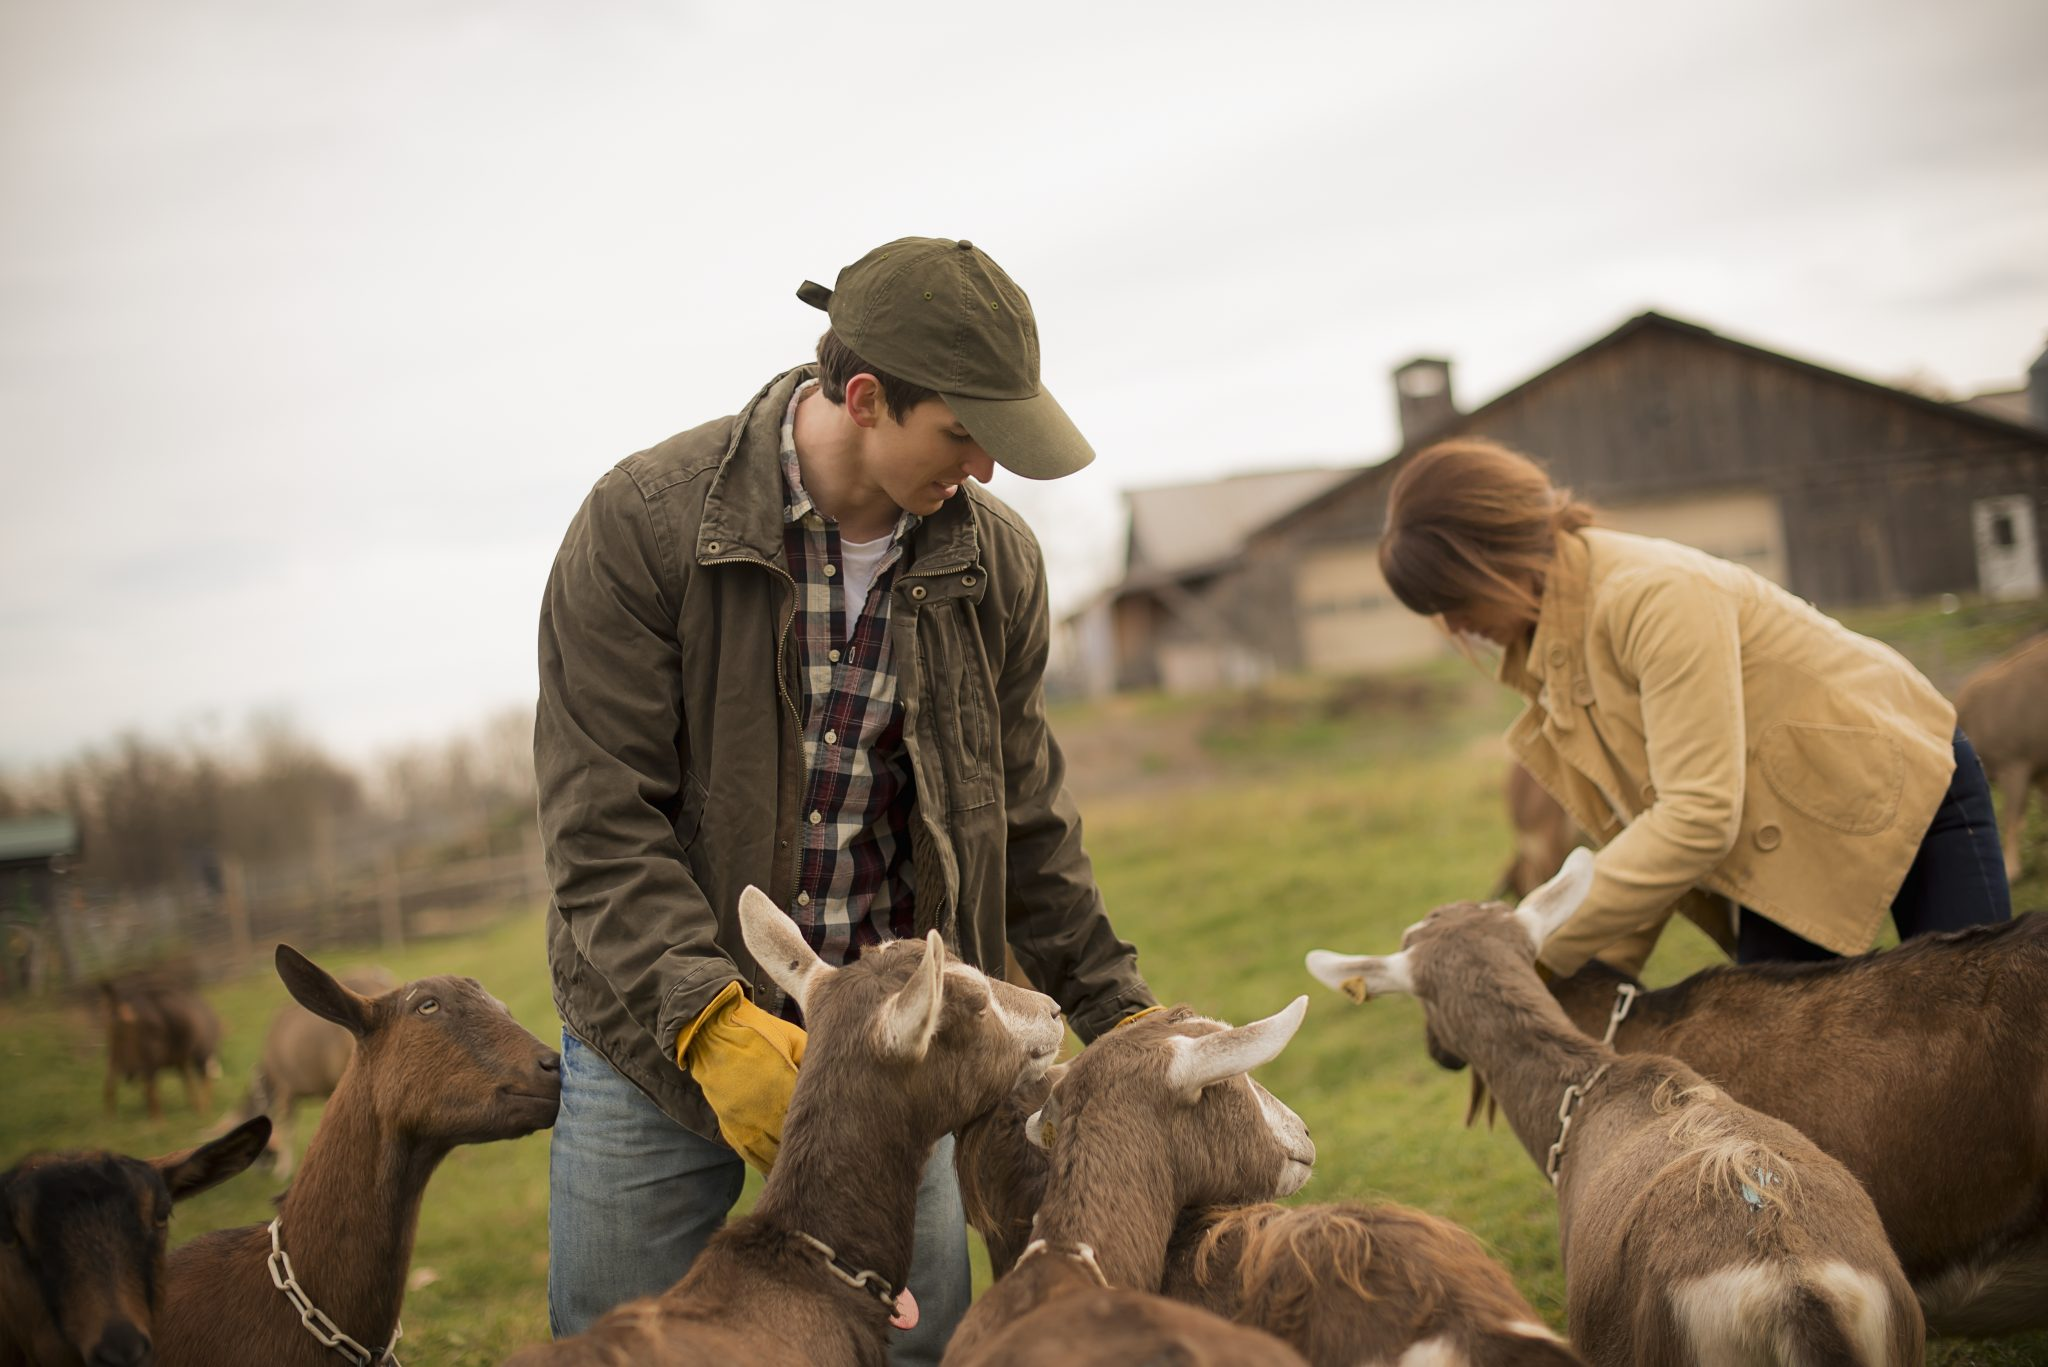 Man and woman tending to their goats.